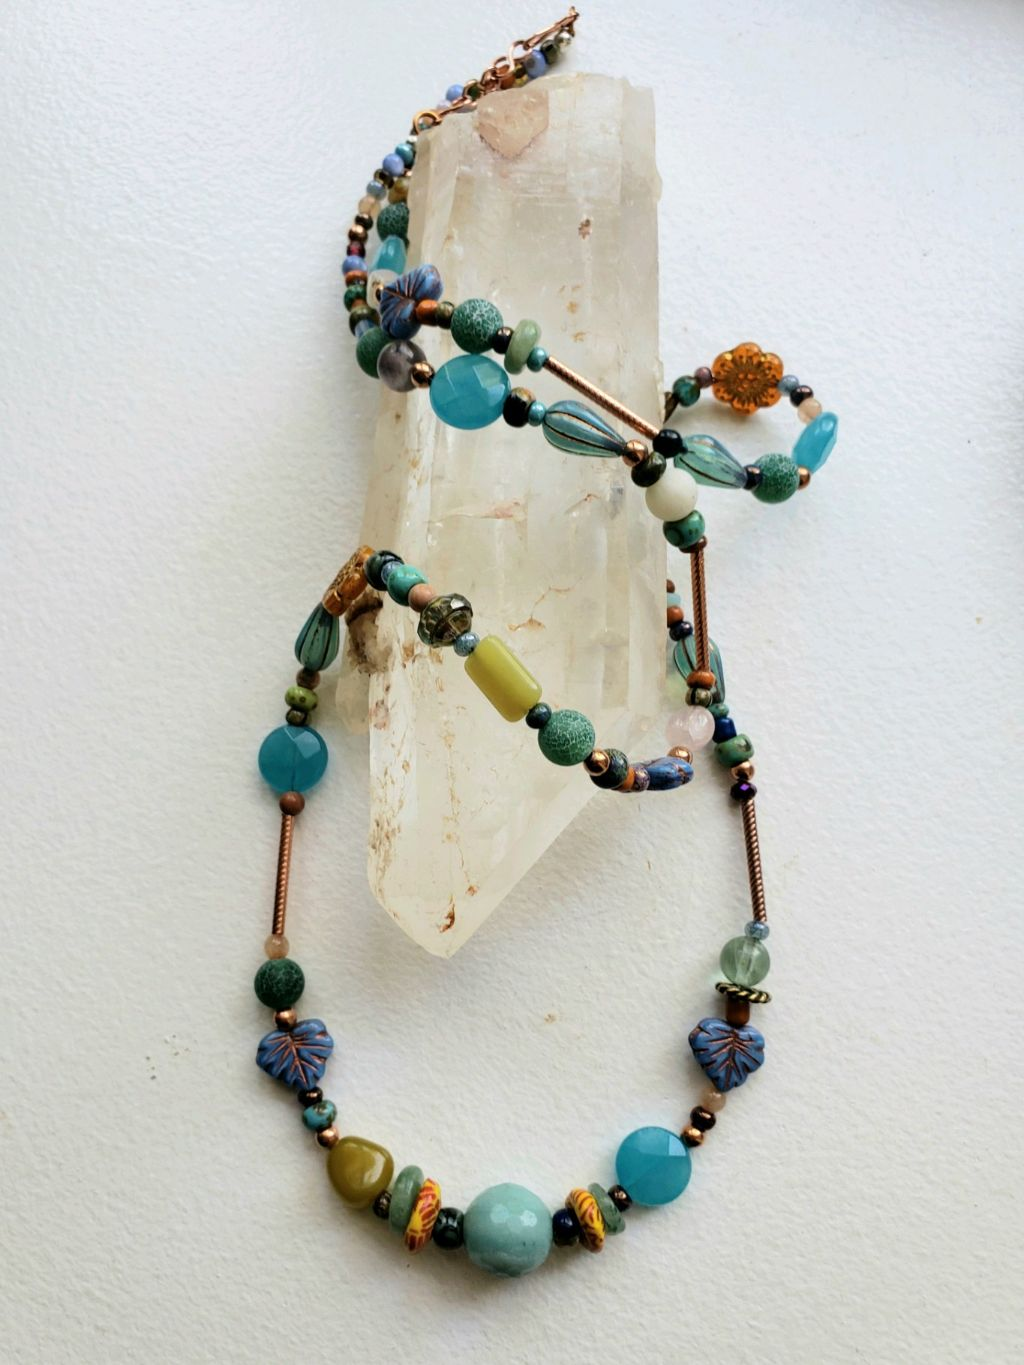 Long, multi-stones, vintage glass, copper tubes and beads